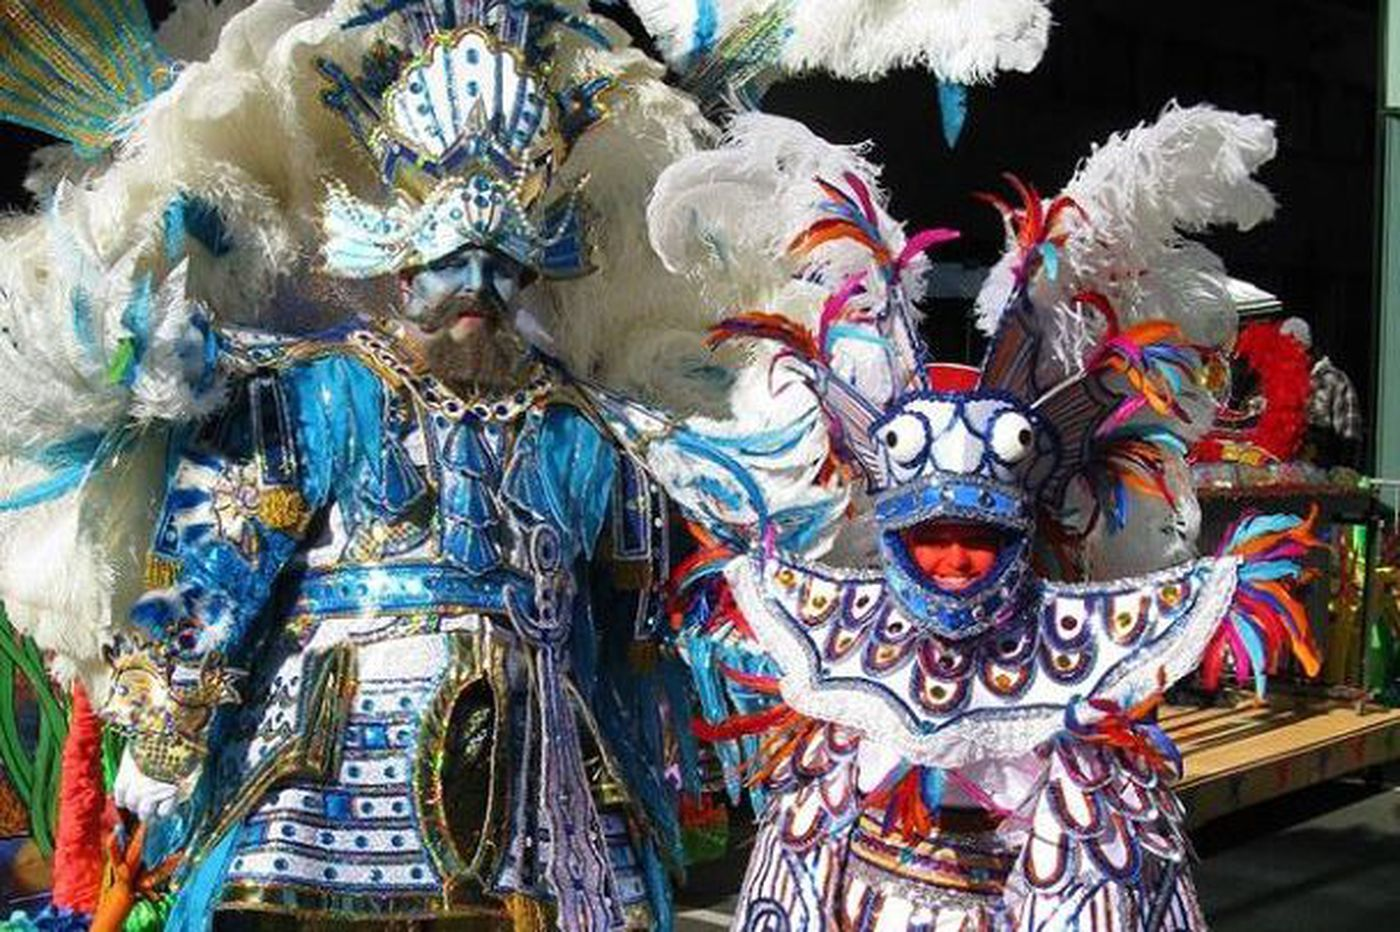 After death of his father, 11-year-old takes over Mummers string band